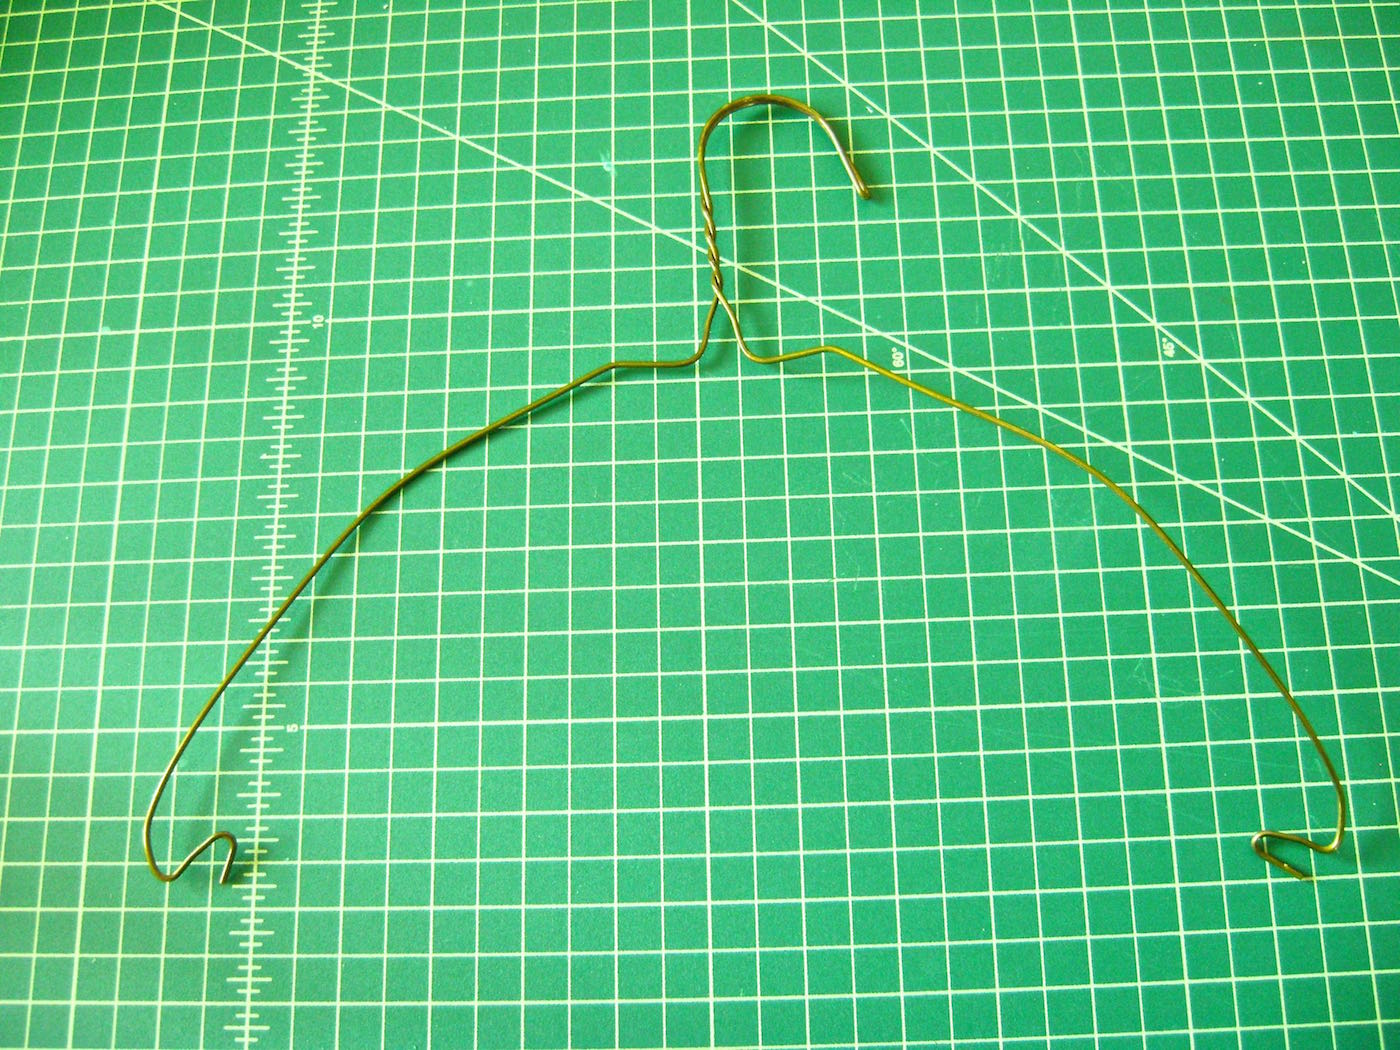 step 6 -  The Mesh Hanger   Twist the white tube between the wire sides of the hanger to remove it. Use pliers to straighten the bent ends and bend both wires over your thigh into an outward arched shape.